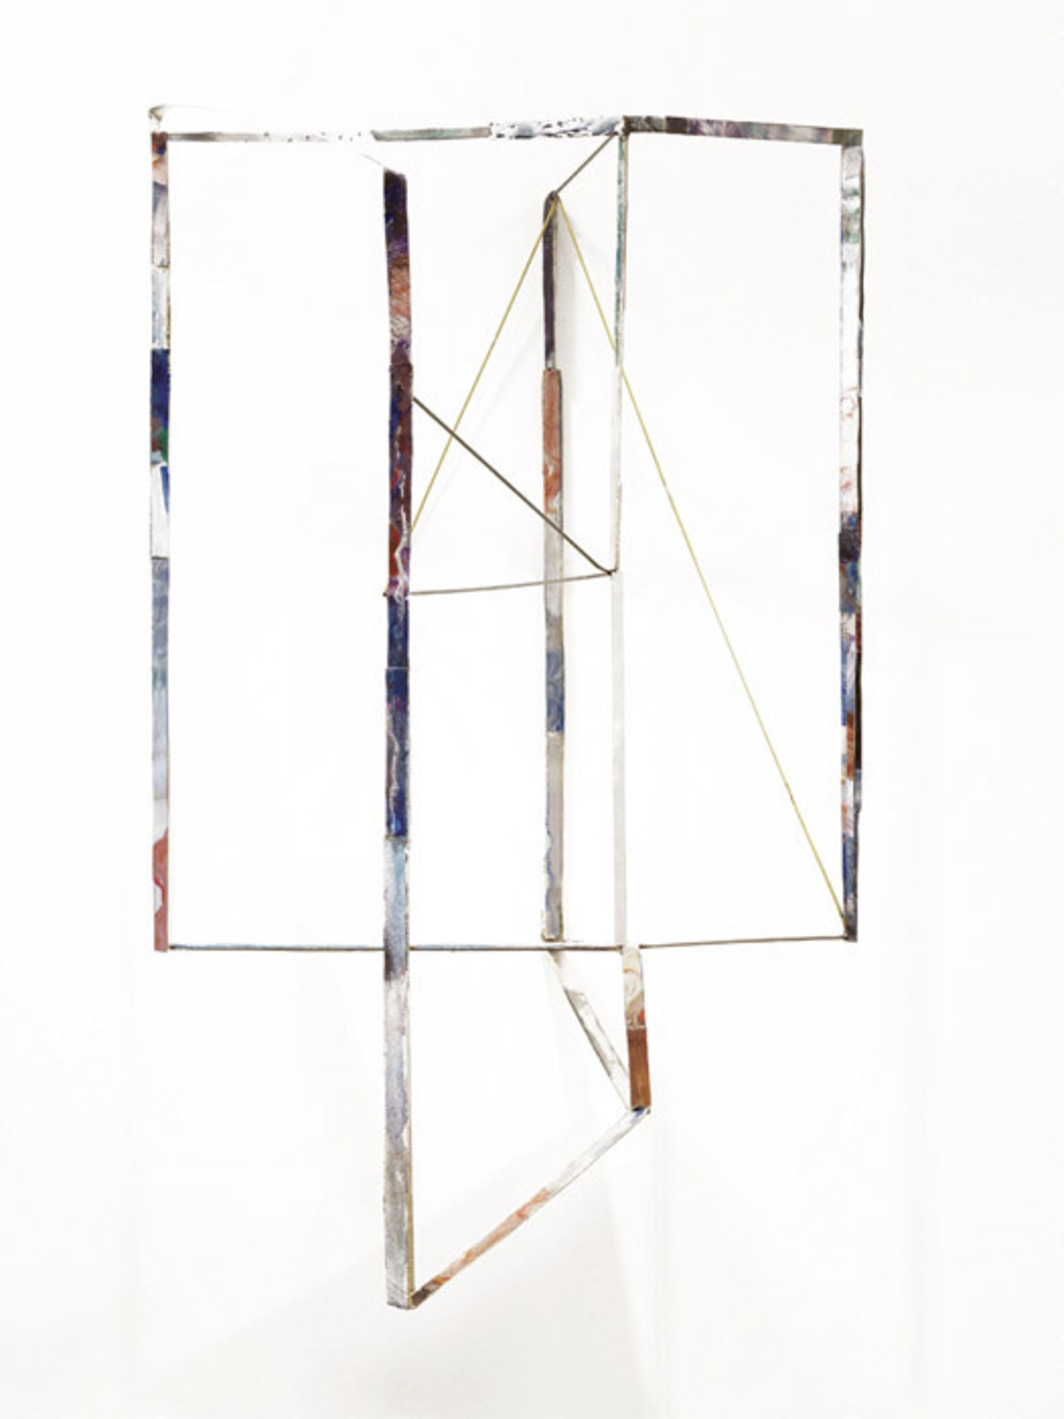 "Sara Barker, Draft overlapped, 2012, oil paint, canvas, steel, brass, aluminum, metal filler, glass, 40 1/8 x 24 3/8 x 18 1/8""."